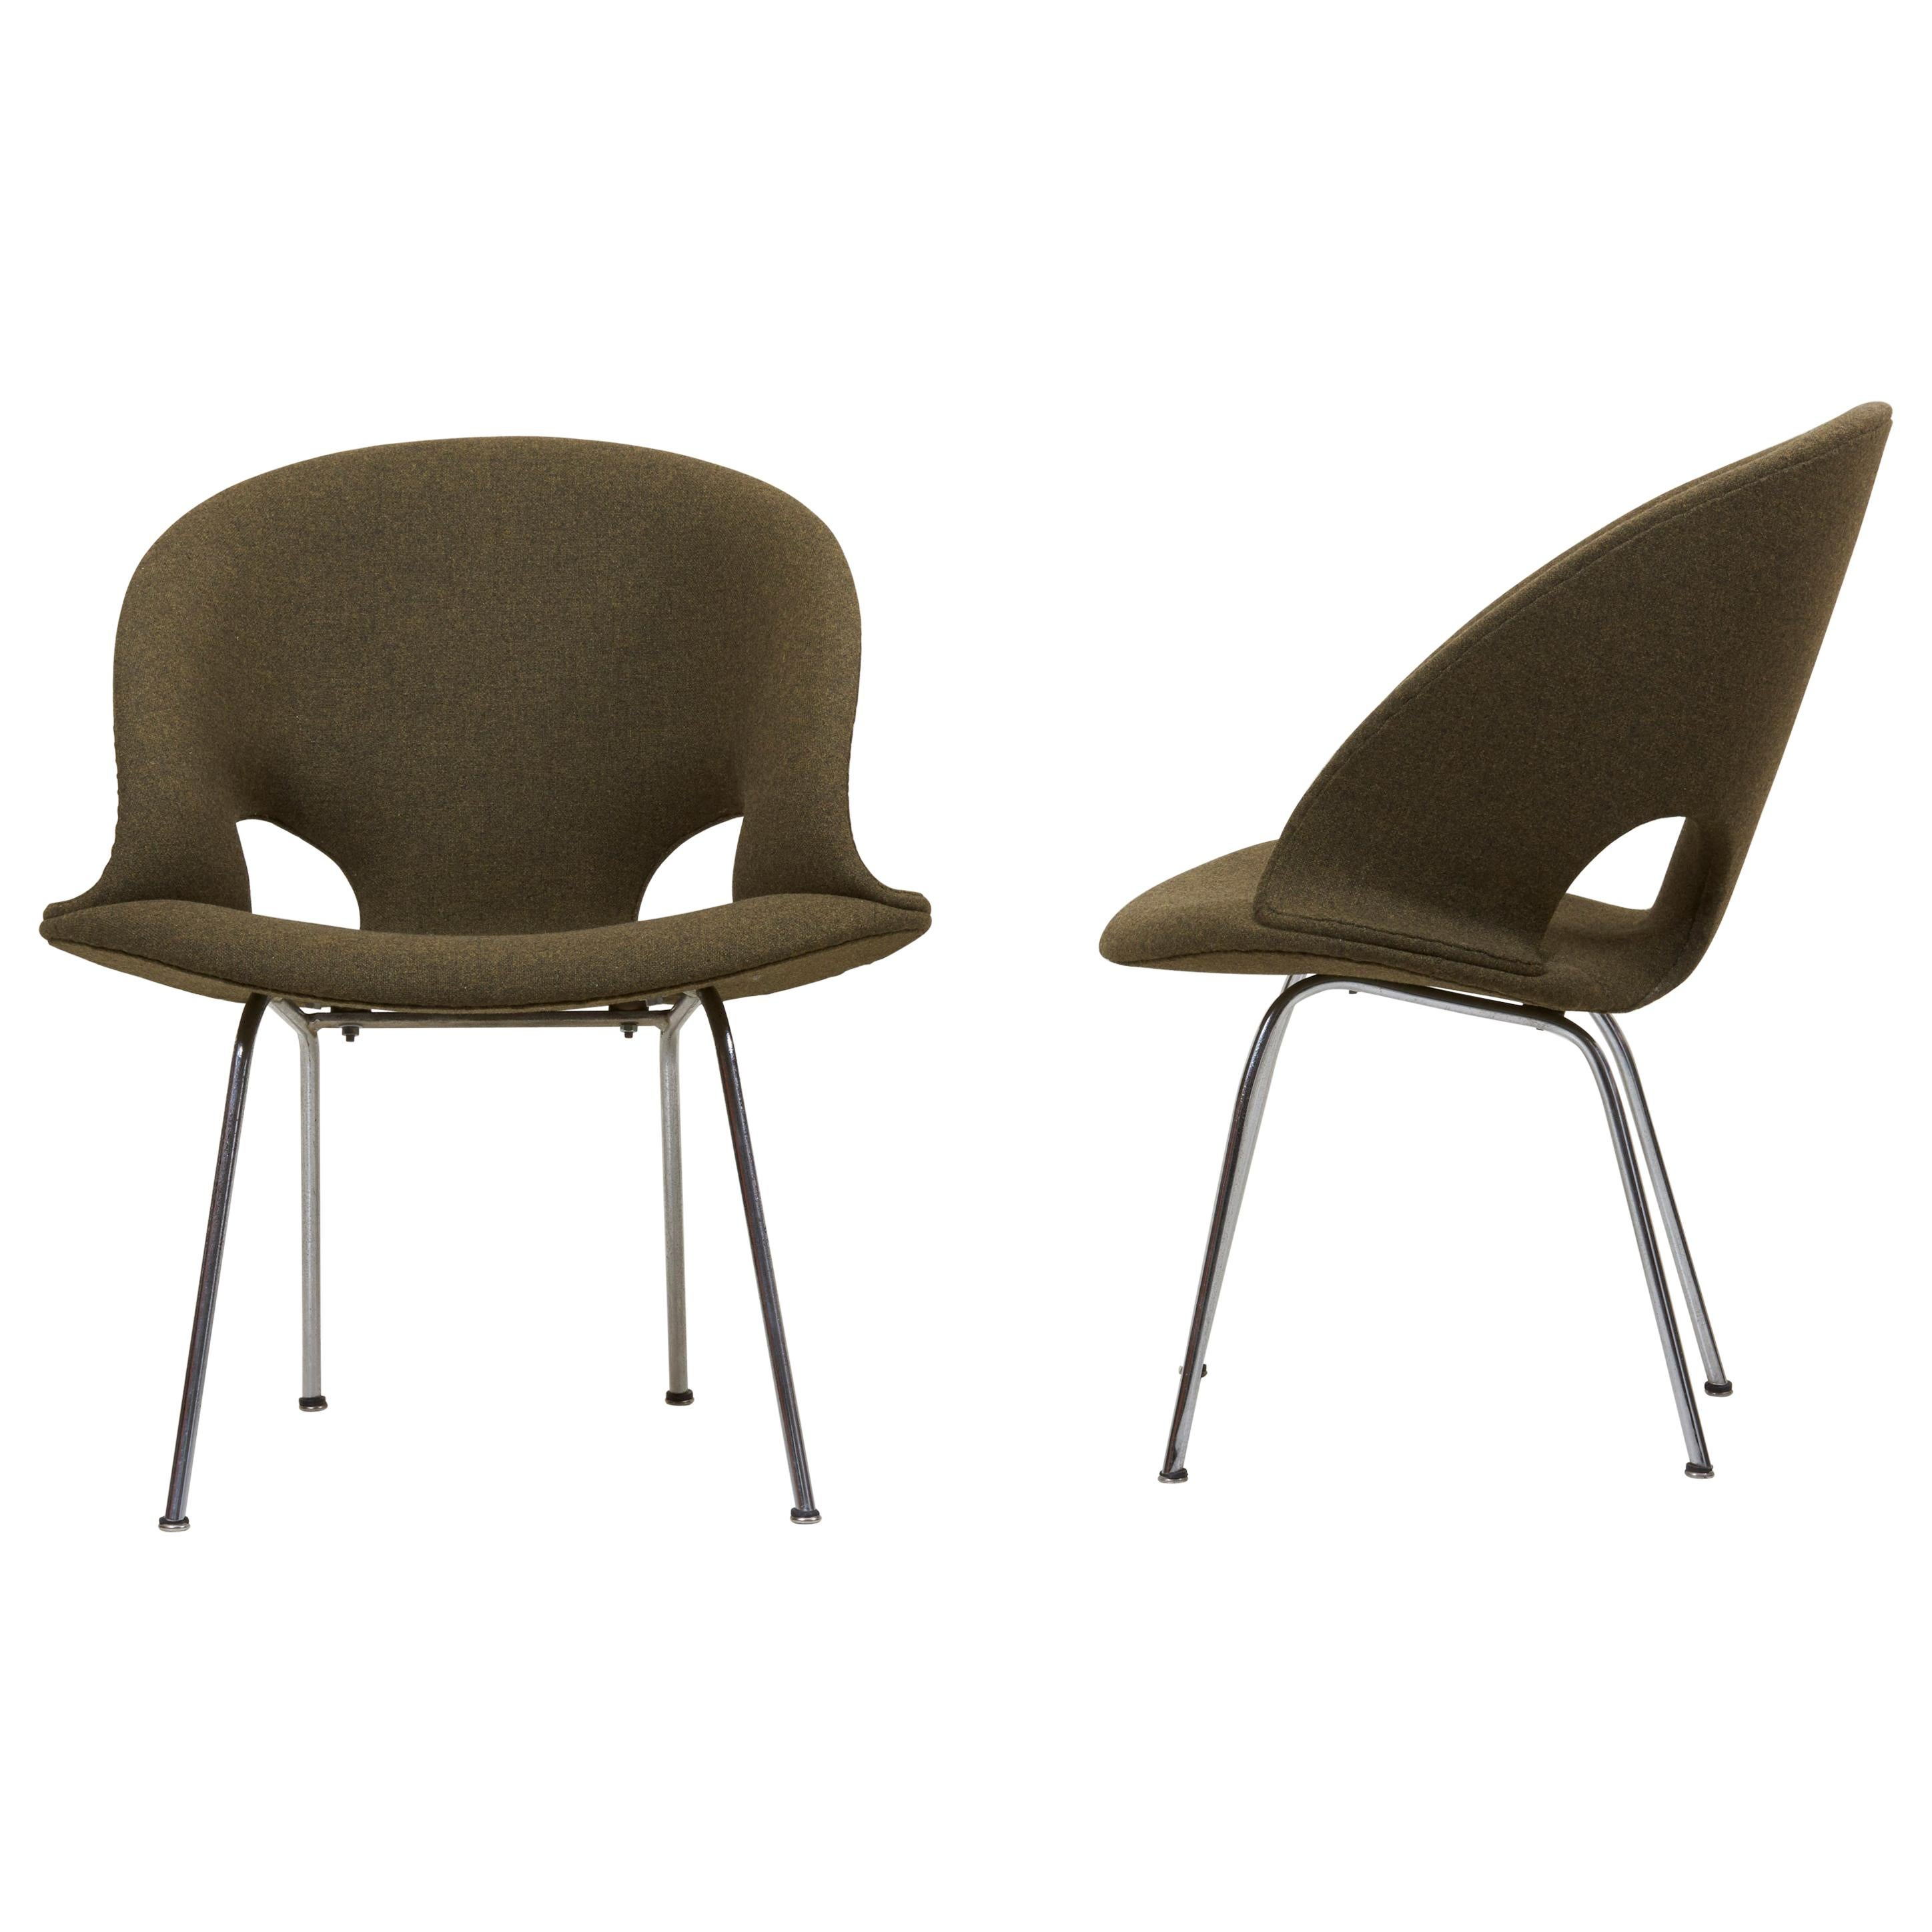 Newly Upholstered Pair of Model 350 Lounge Chairs by Arno Votteler Walter Knoll